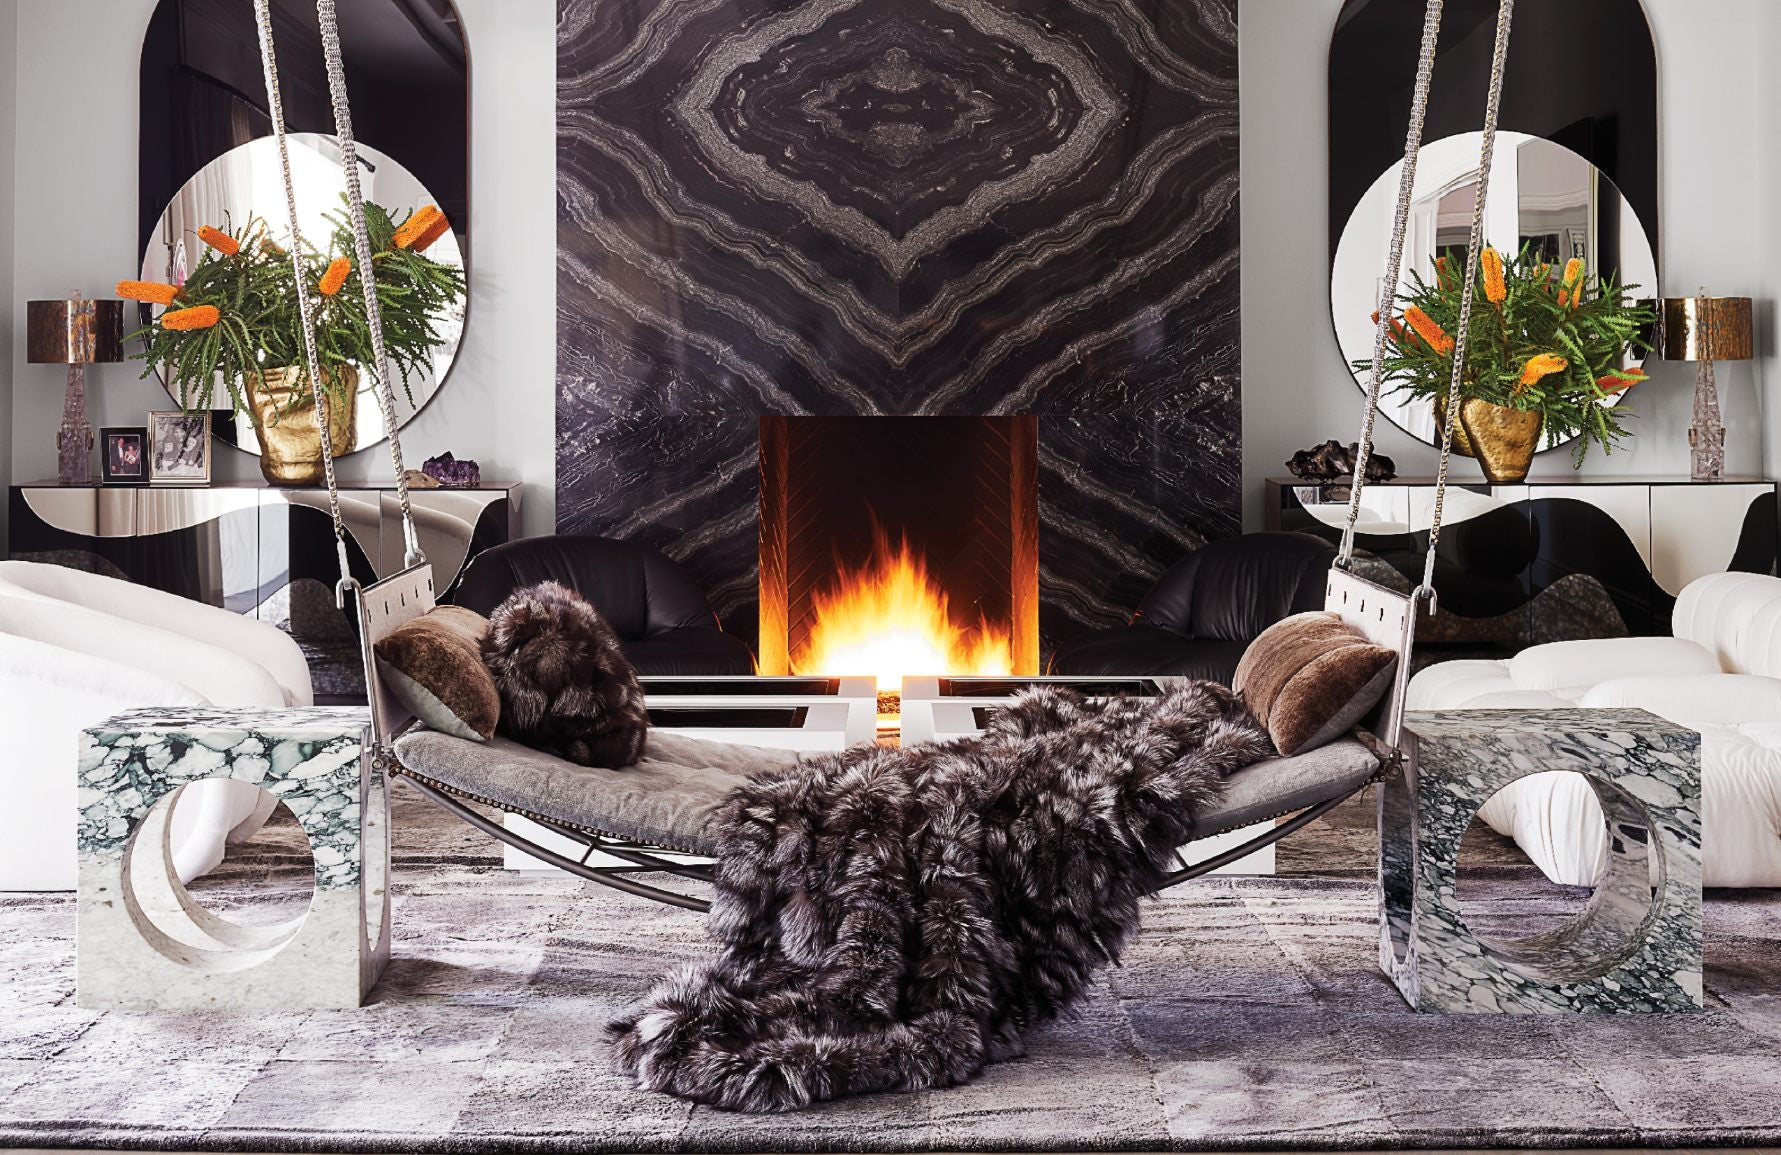 Top 10 American Interior Designers You Need To Know - Martyn Lawrence Bullard - LuxDeco Style Guide